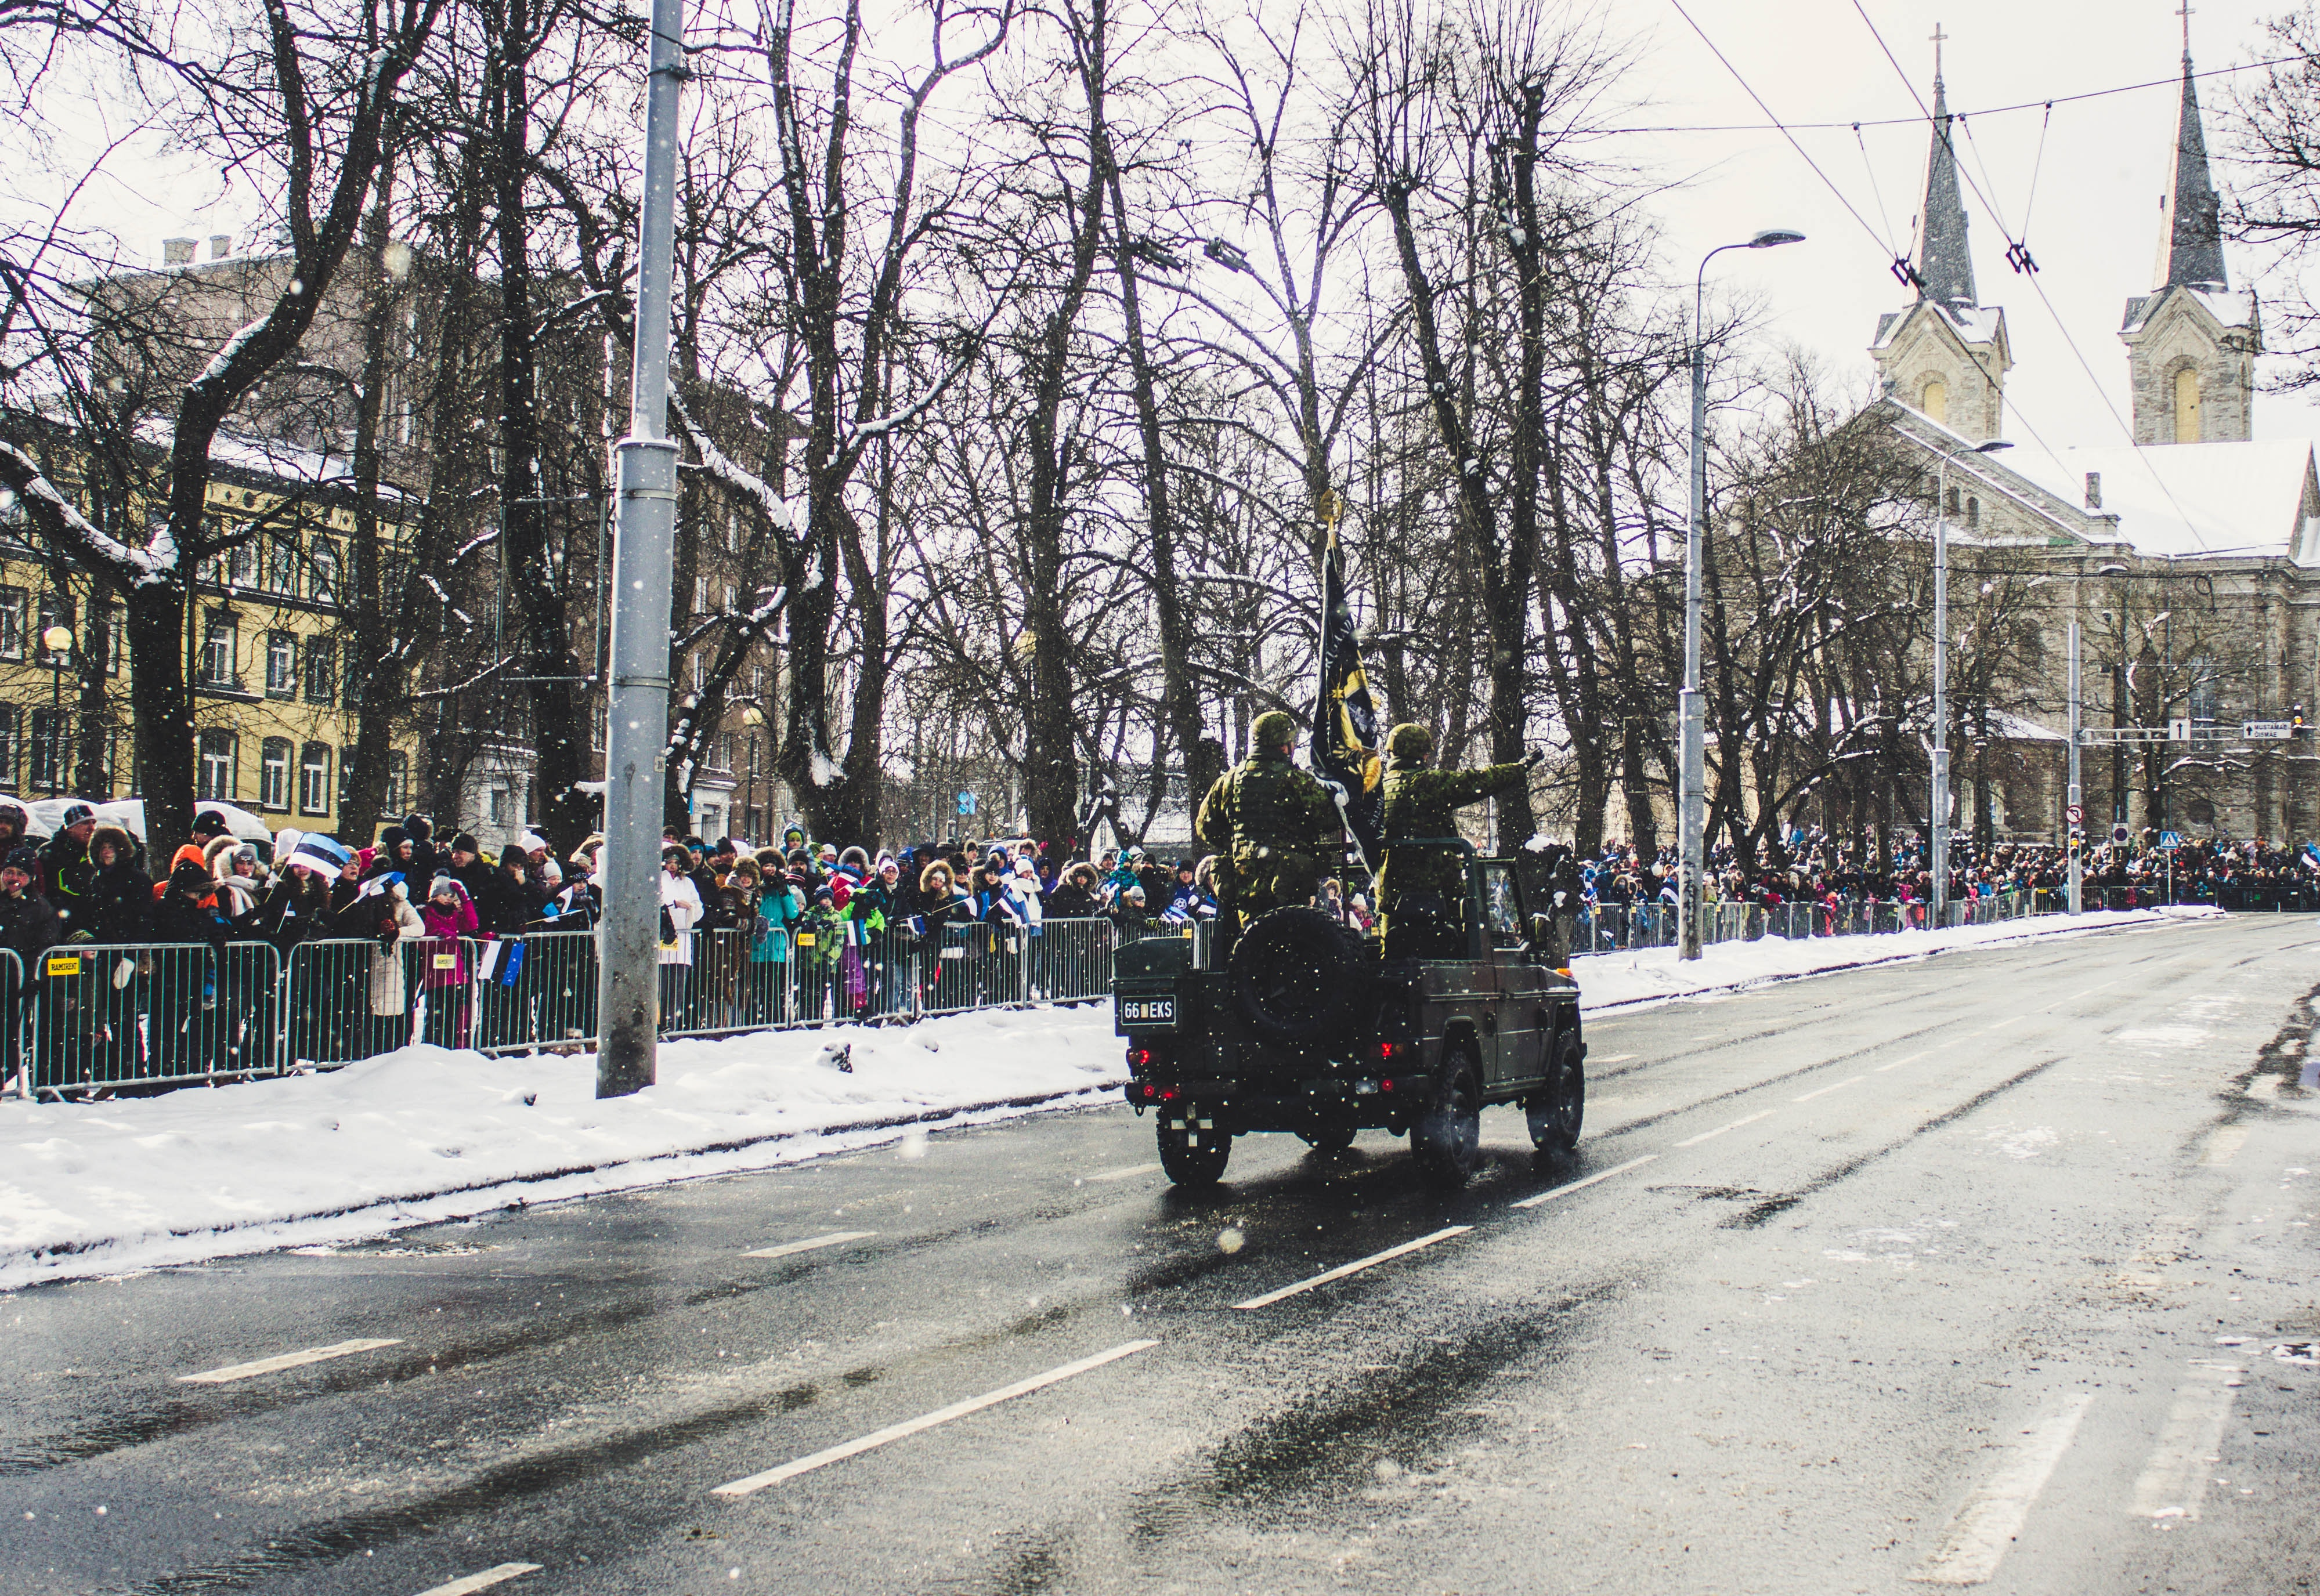 Soldiers Riding a Vehicle during a Parade, Army, People, Wear, Vehicle, HQ Photo